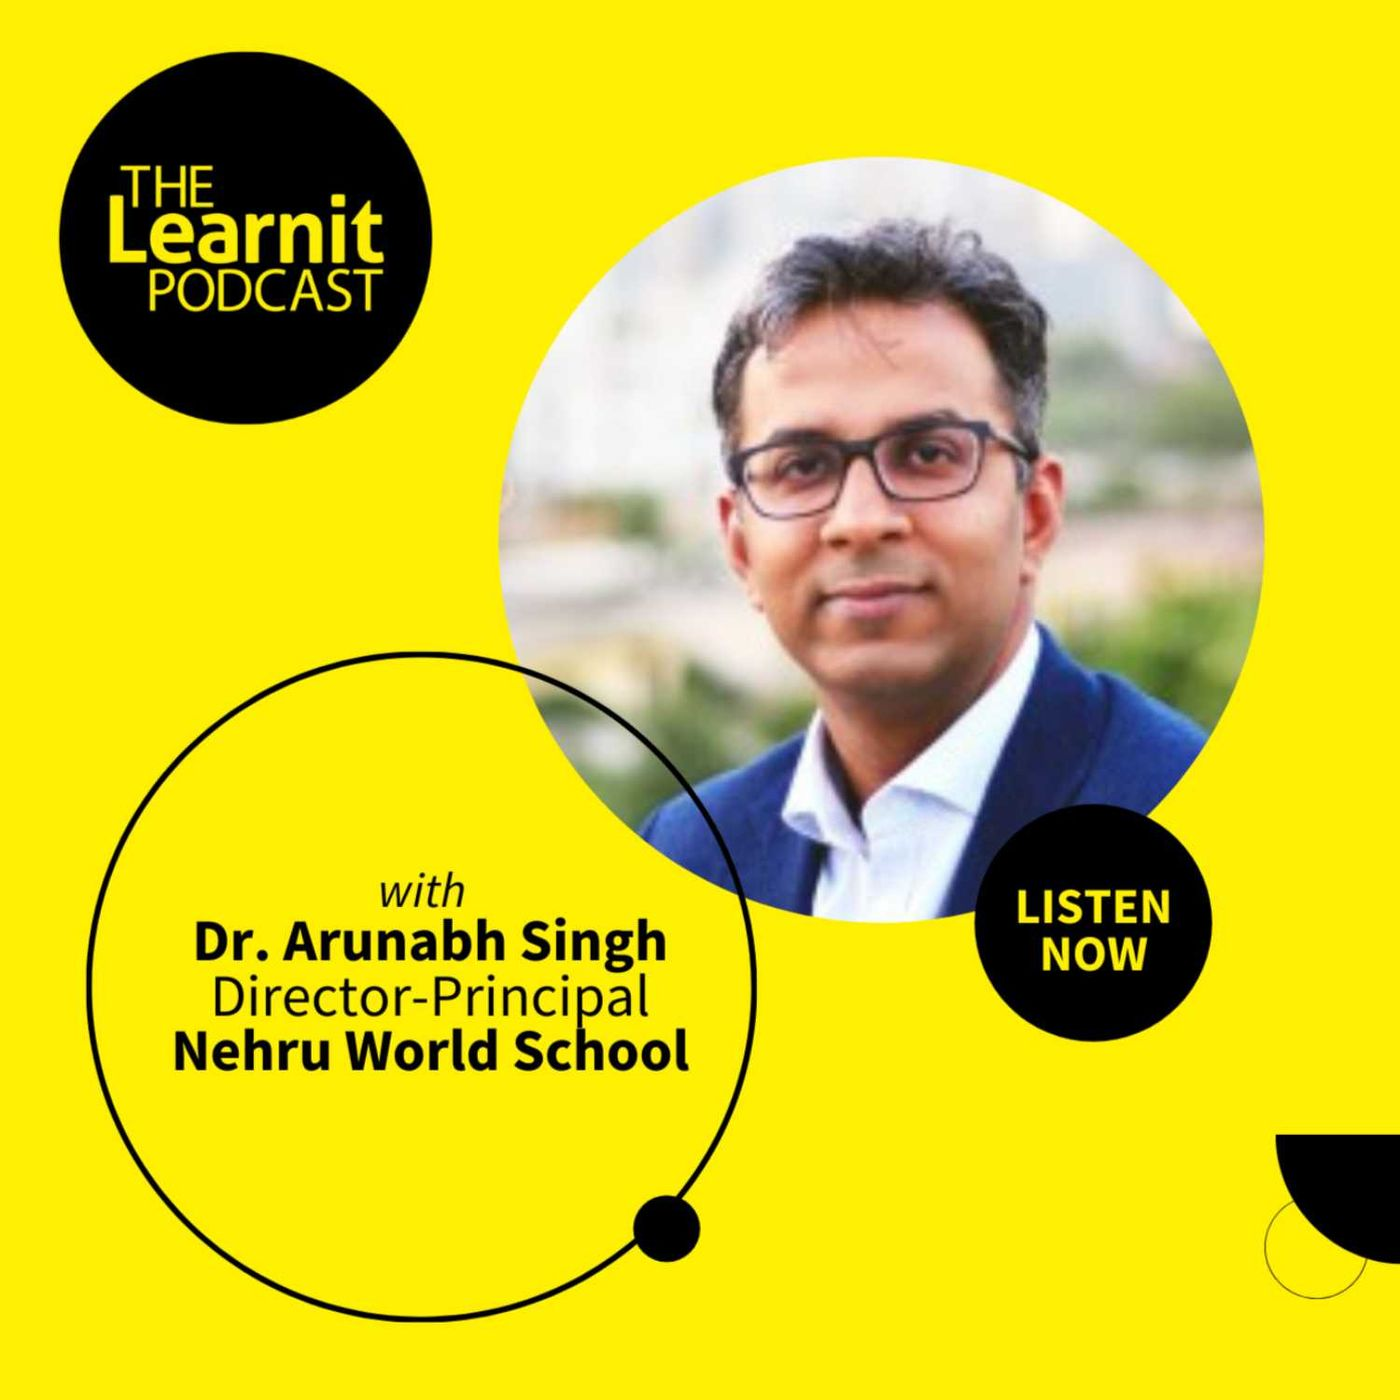 #25, Dr. Arunabh Singh, Director-Principal, Nehru World School: The Quantum Leap Envisioned For India's New Education Policy